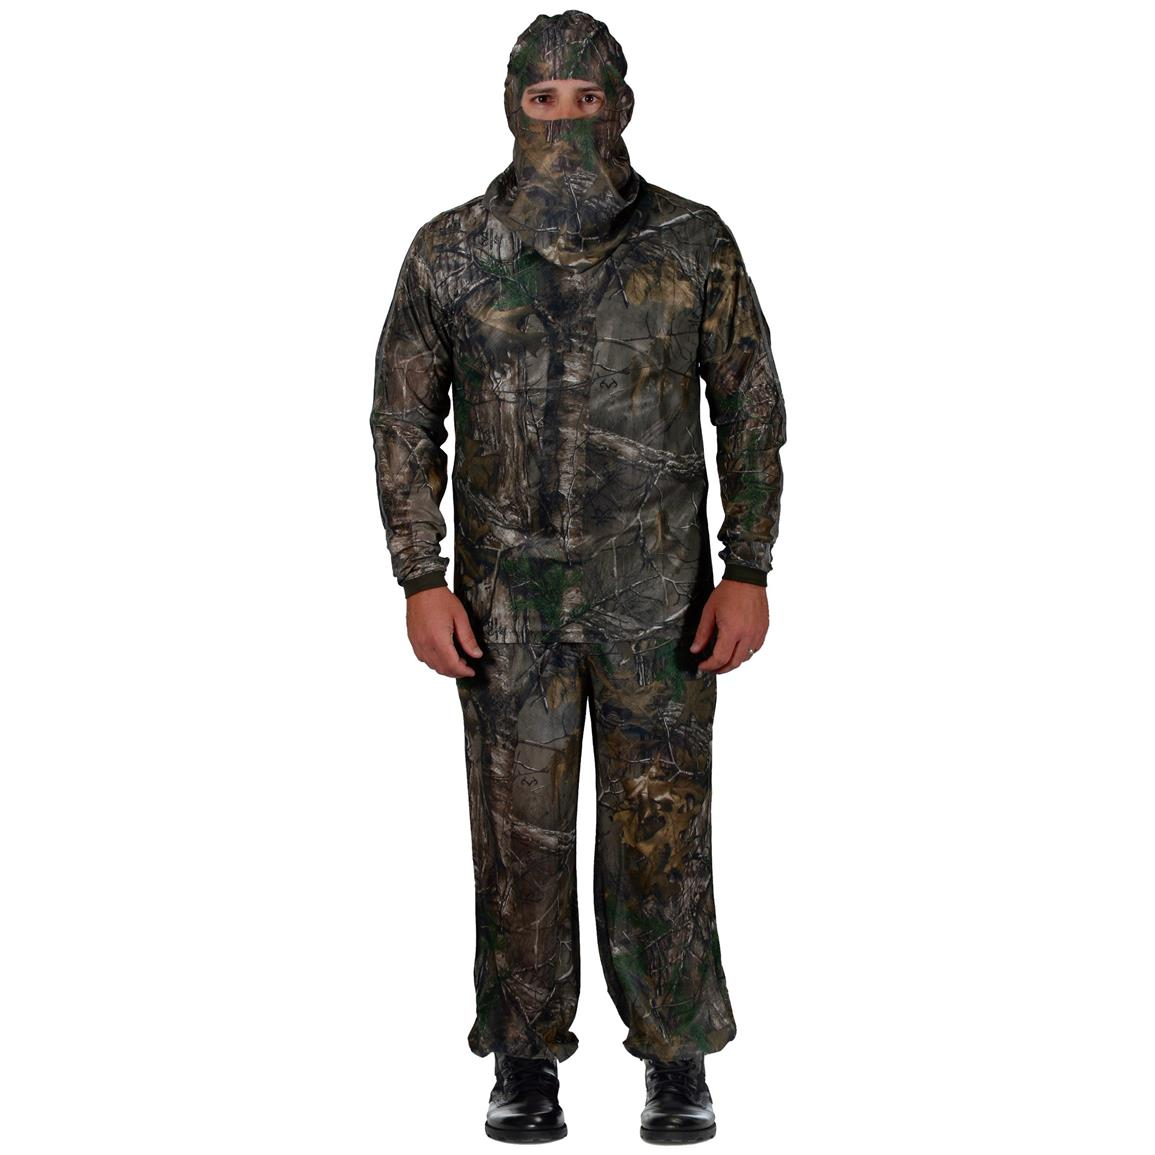 HECS Stealthscreen 3 Piece Concealment Suit, Realtree Xtra